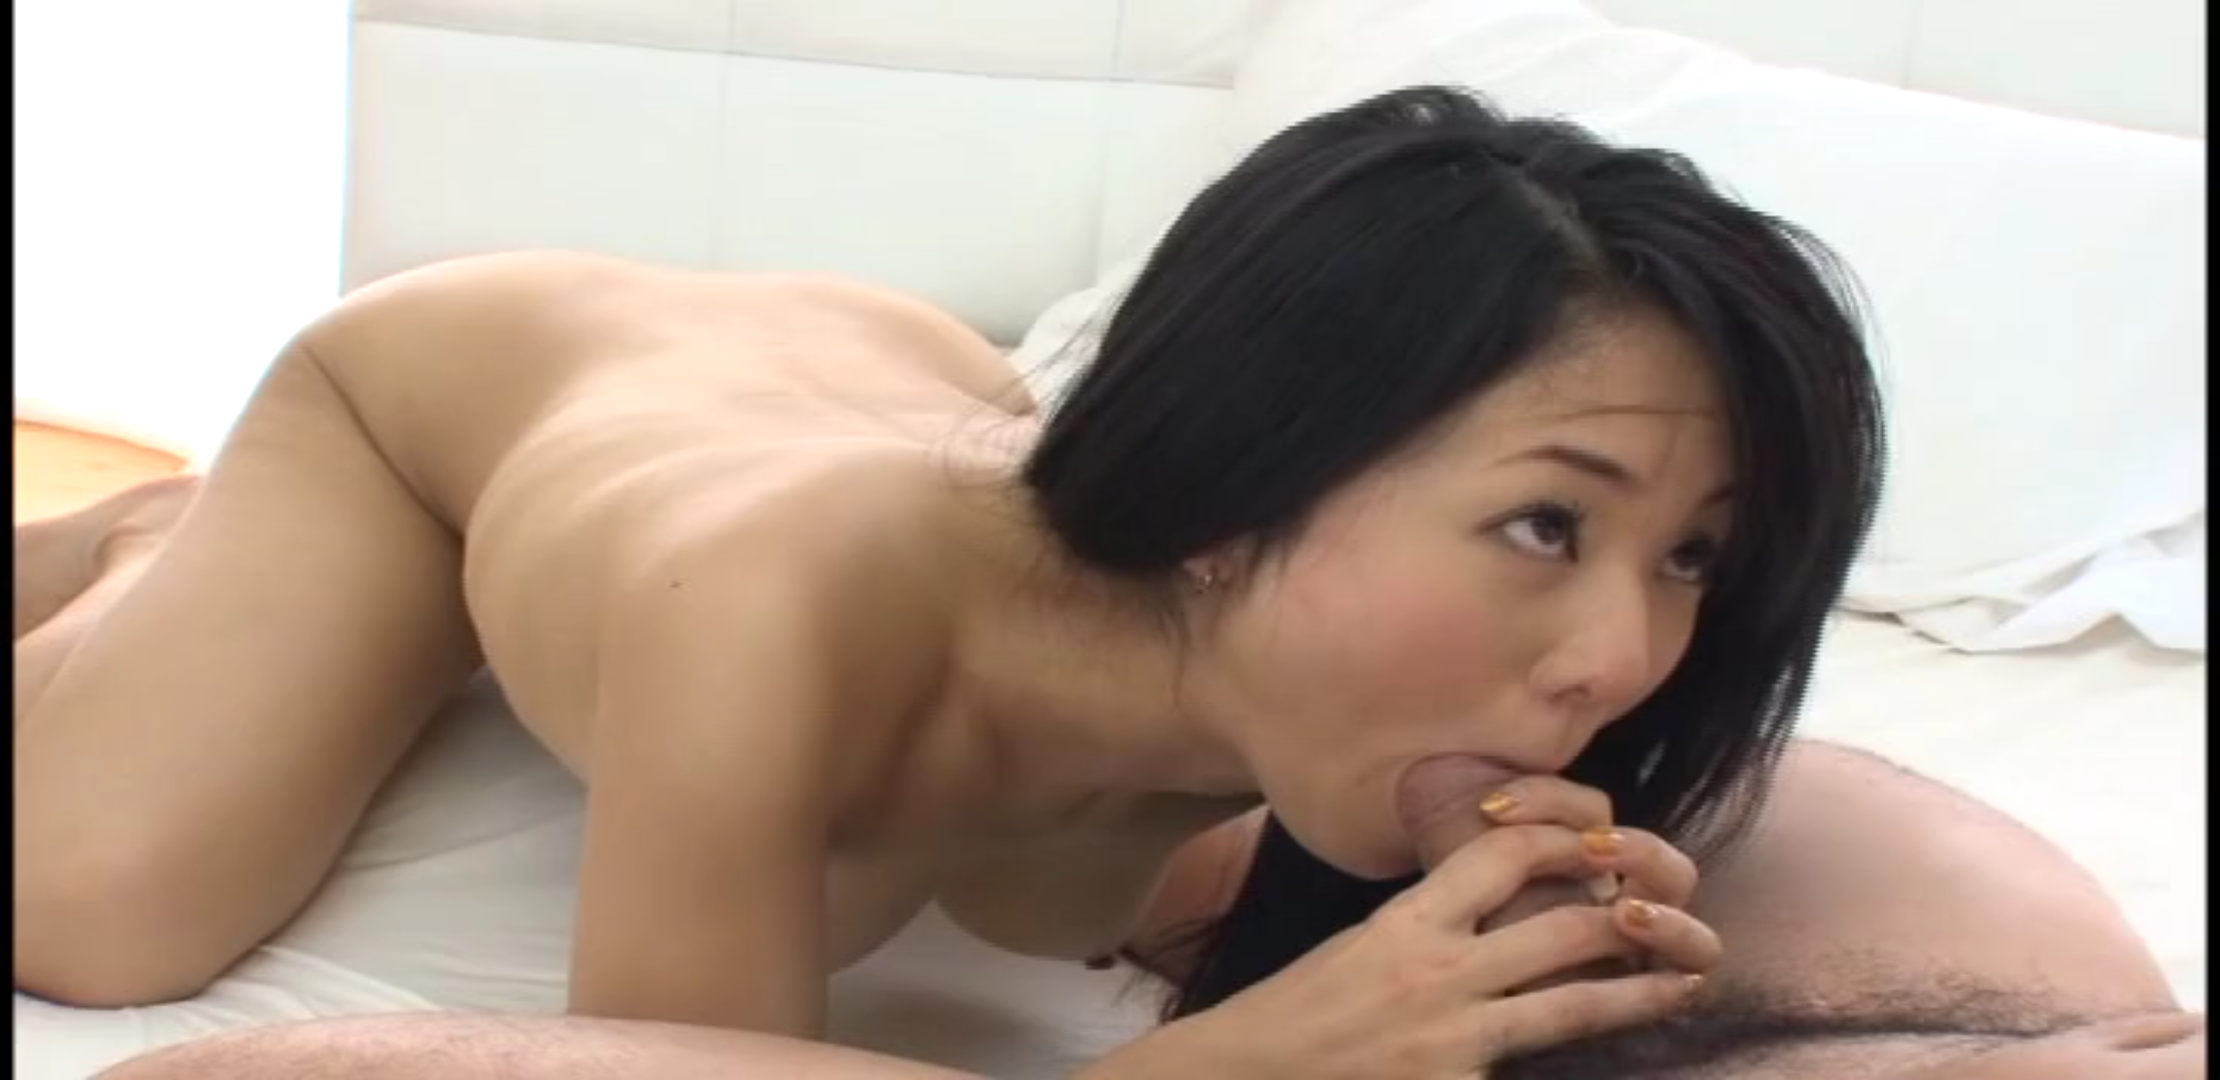 naked chicks grinding pussies together